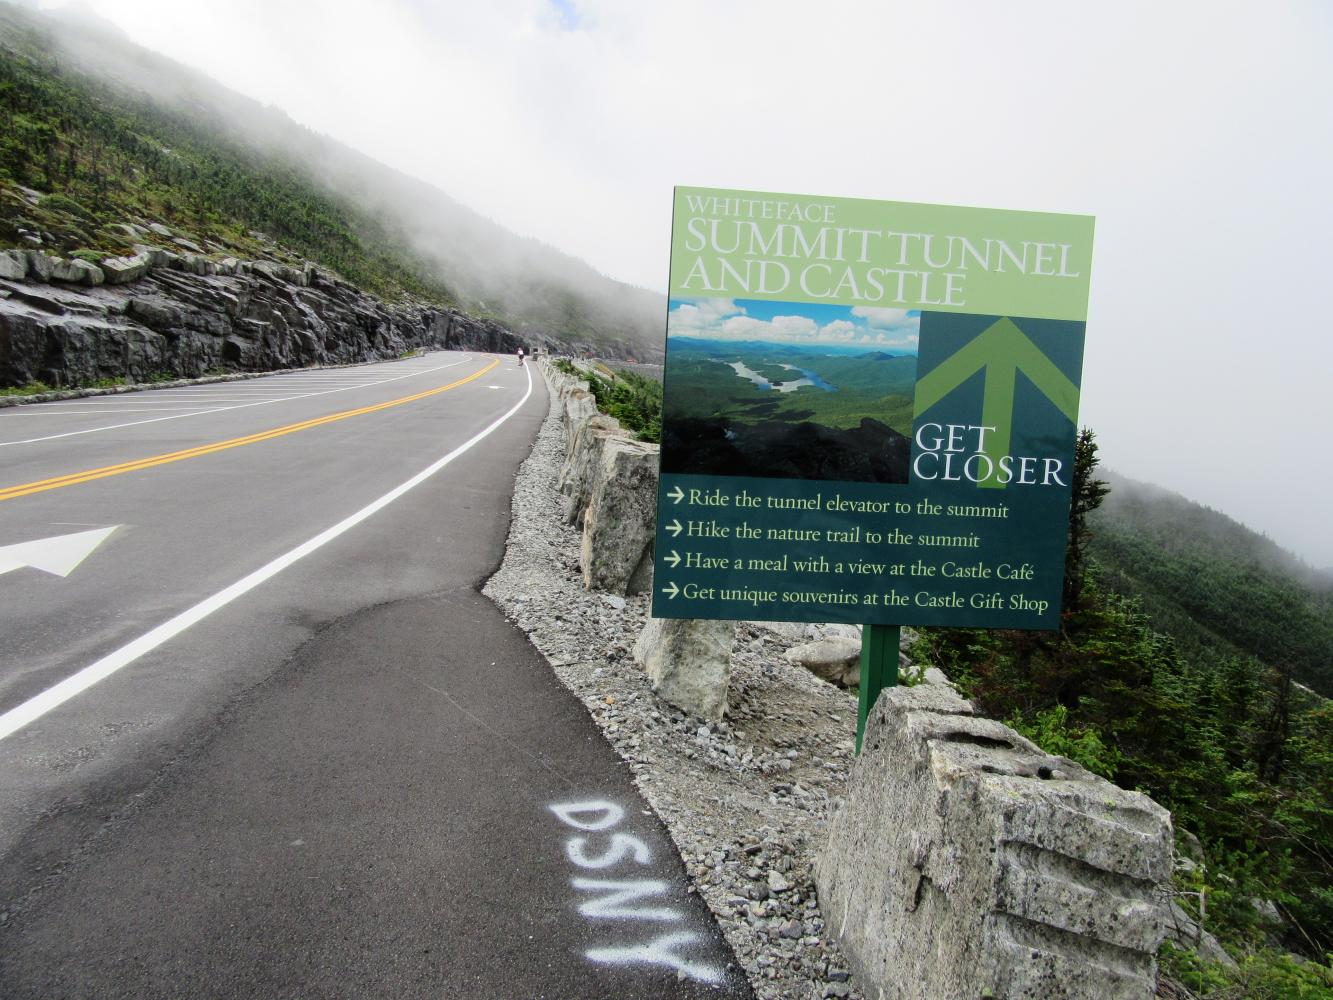 Whiteface Mountain, NY, USA - PJAMM Cycling - Climb of the Week